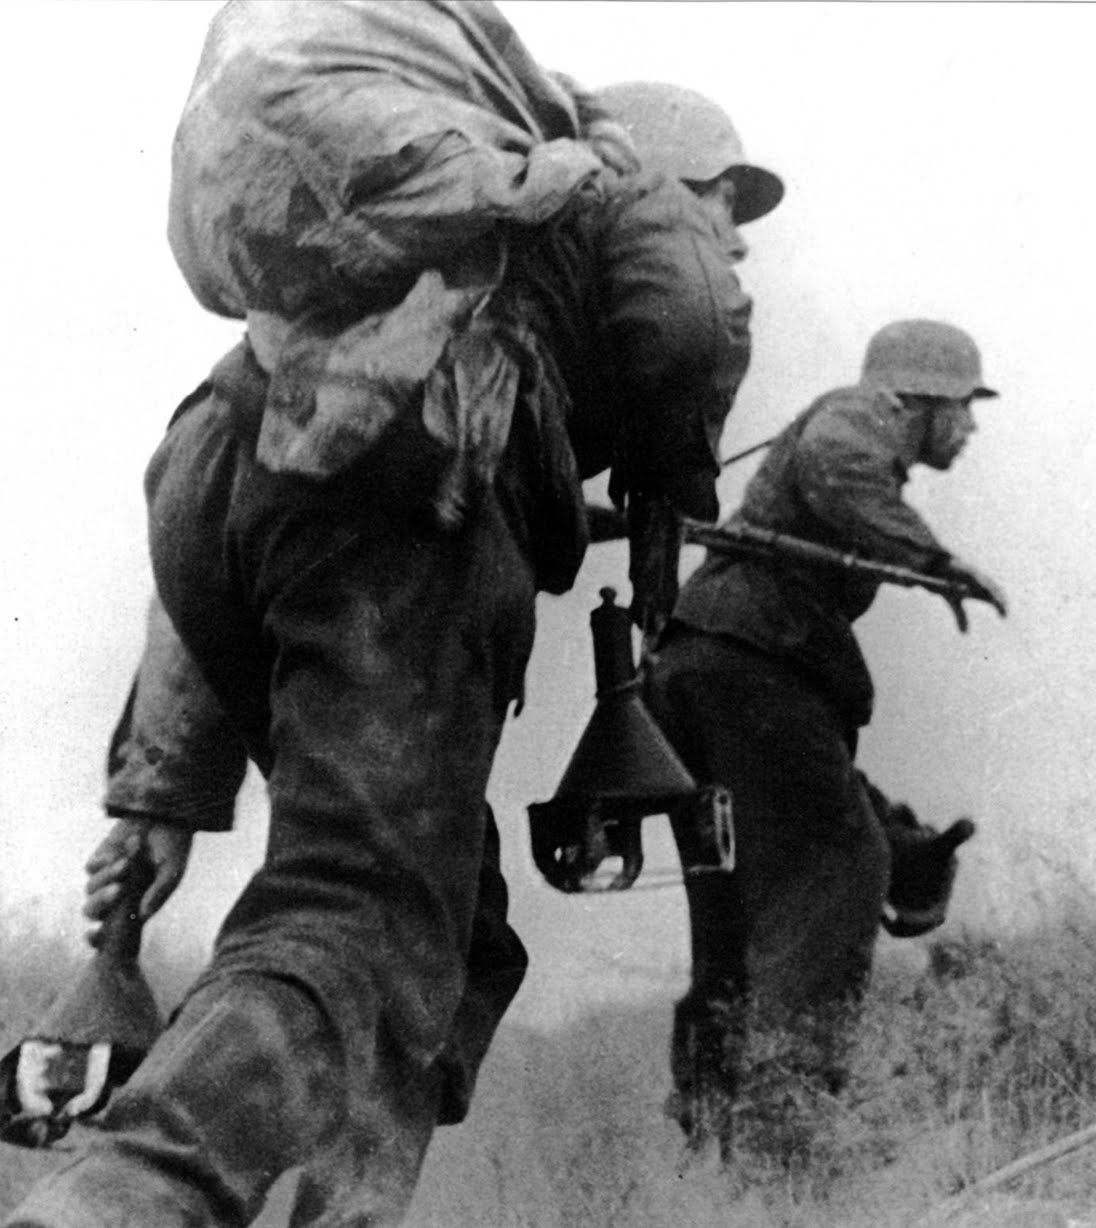 A pair of Waffen SS soldiers armed with limpet mines.